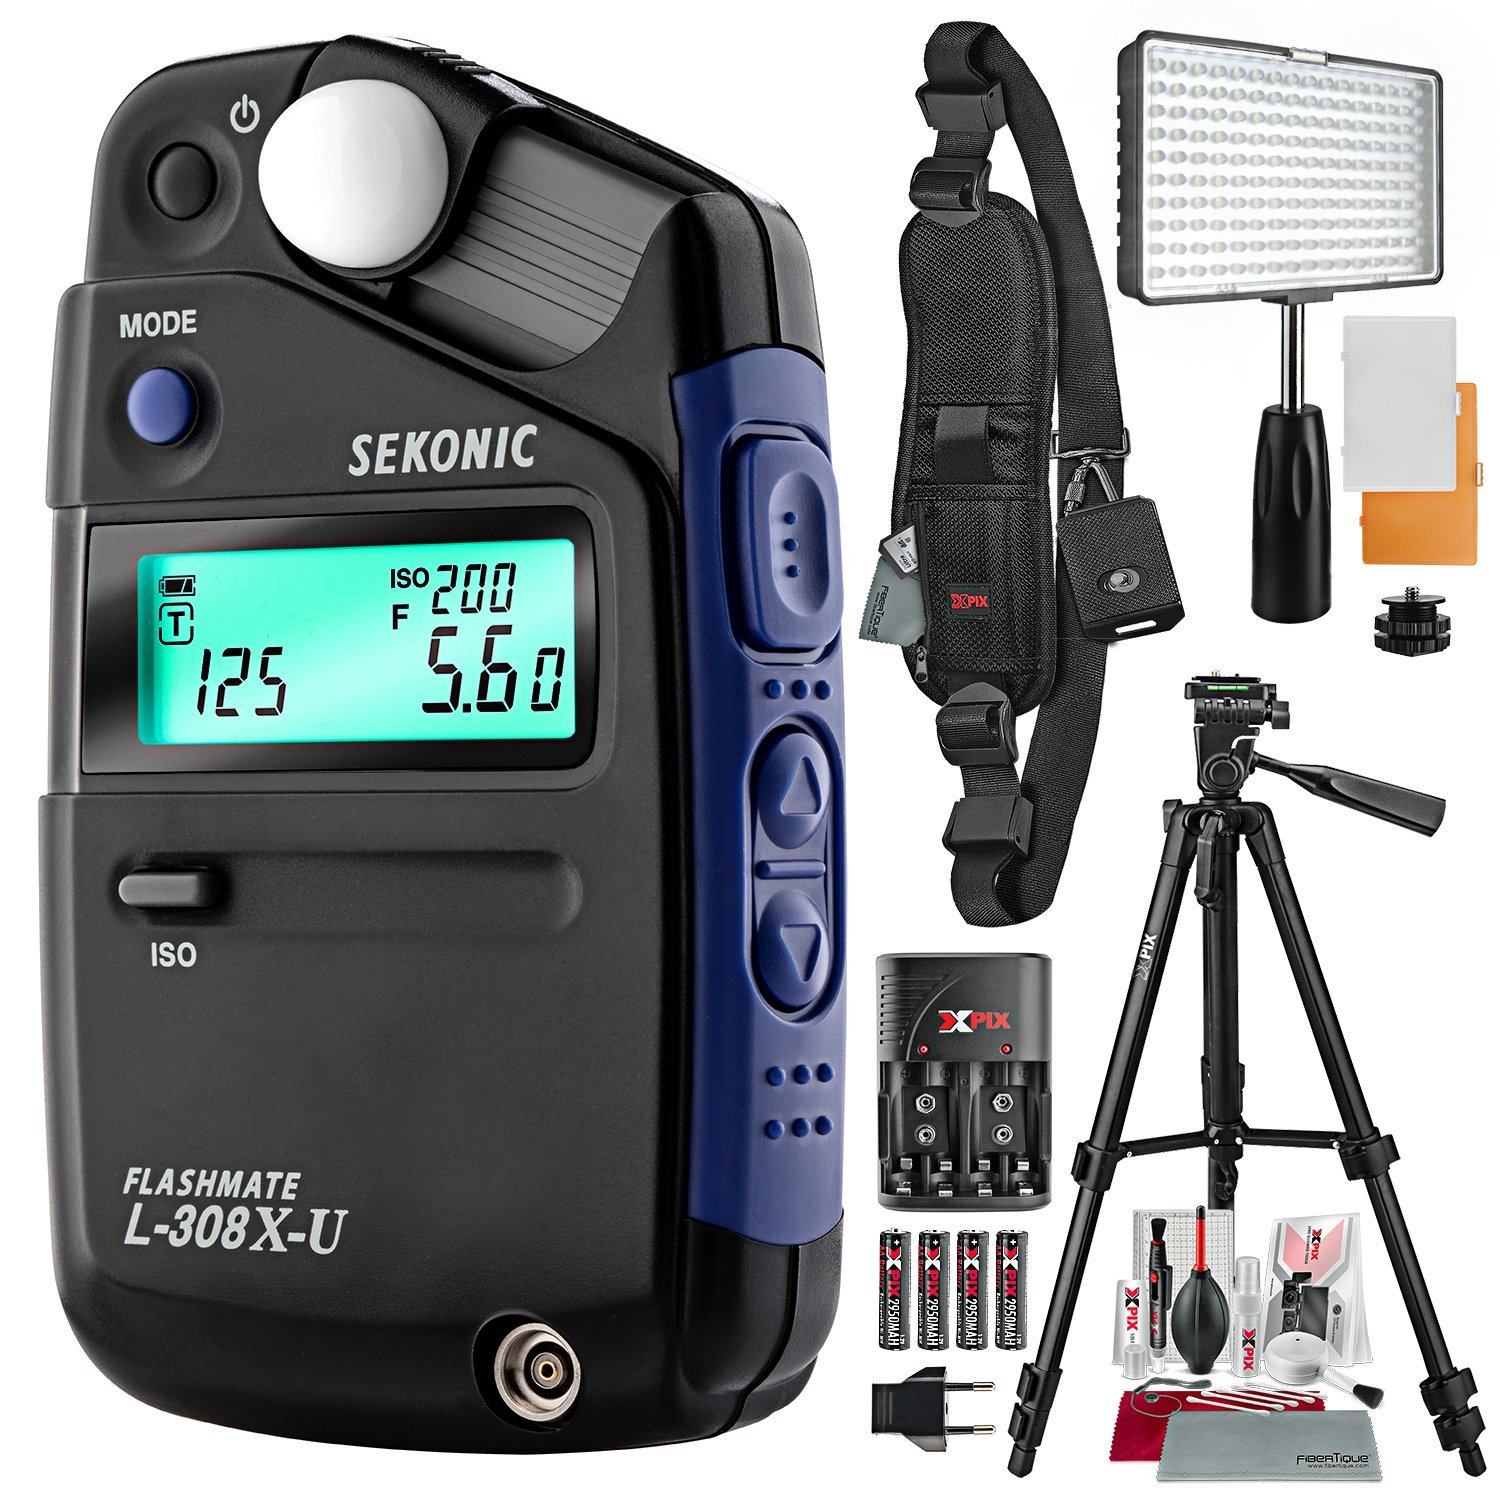 Sekonic L-308X-U Flashmate Light Meter with 160 LED Video Light, Xpix Professional Camera Strap, Platinum Bundle